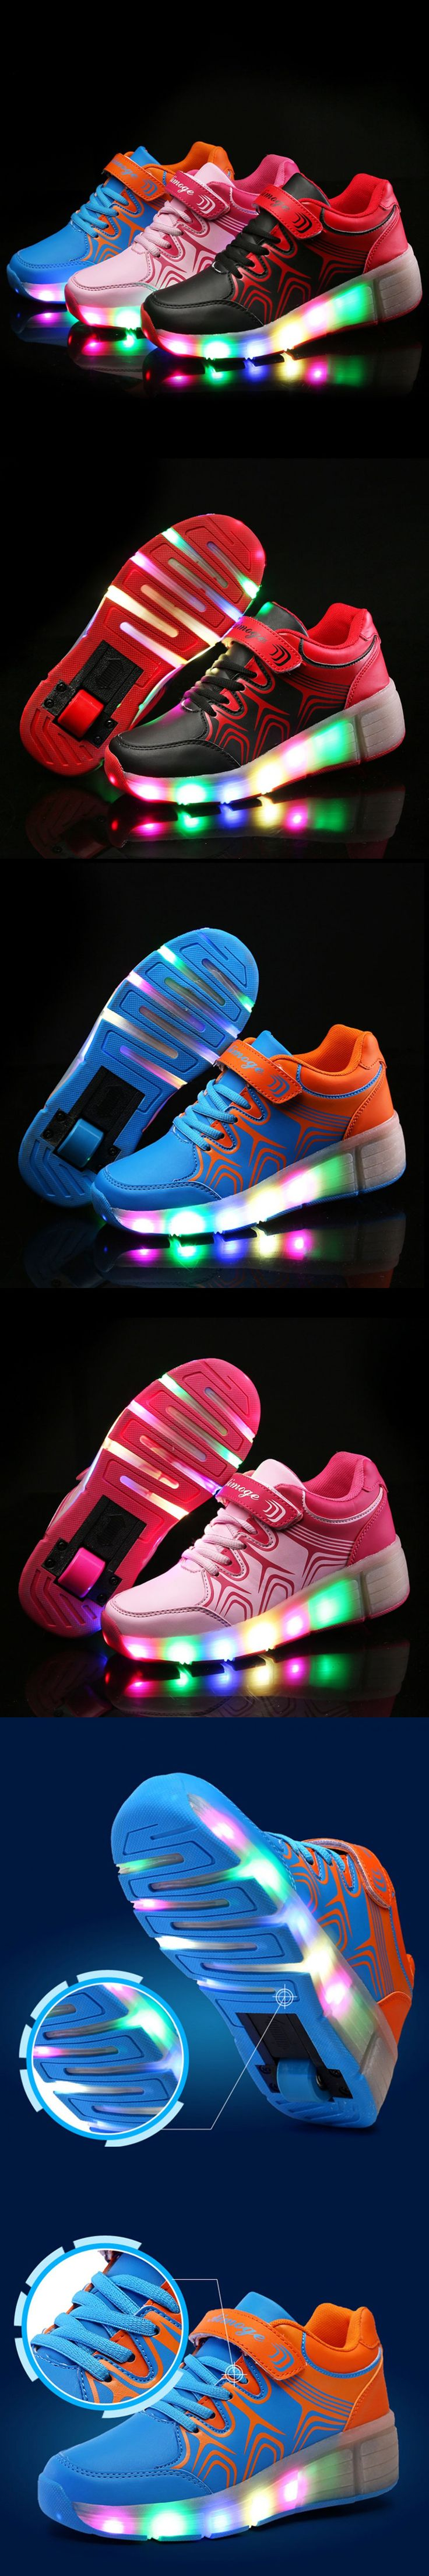 Children wheely Shoes with Led Lights Kids Roller Shoes With Wheels Wear-resistant for girls boys Sneakers Zapatillas Con Ruedas $45.62